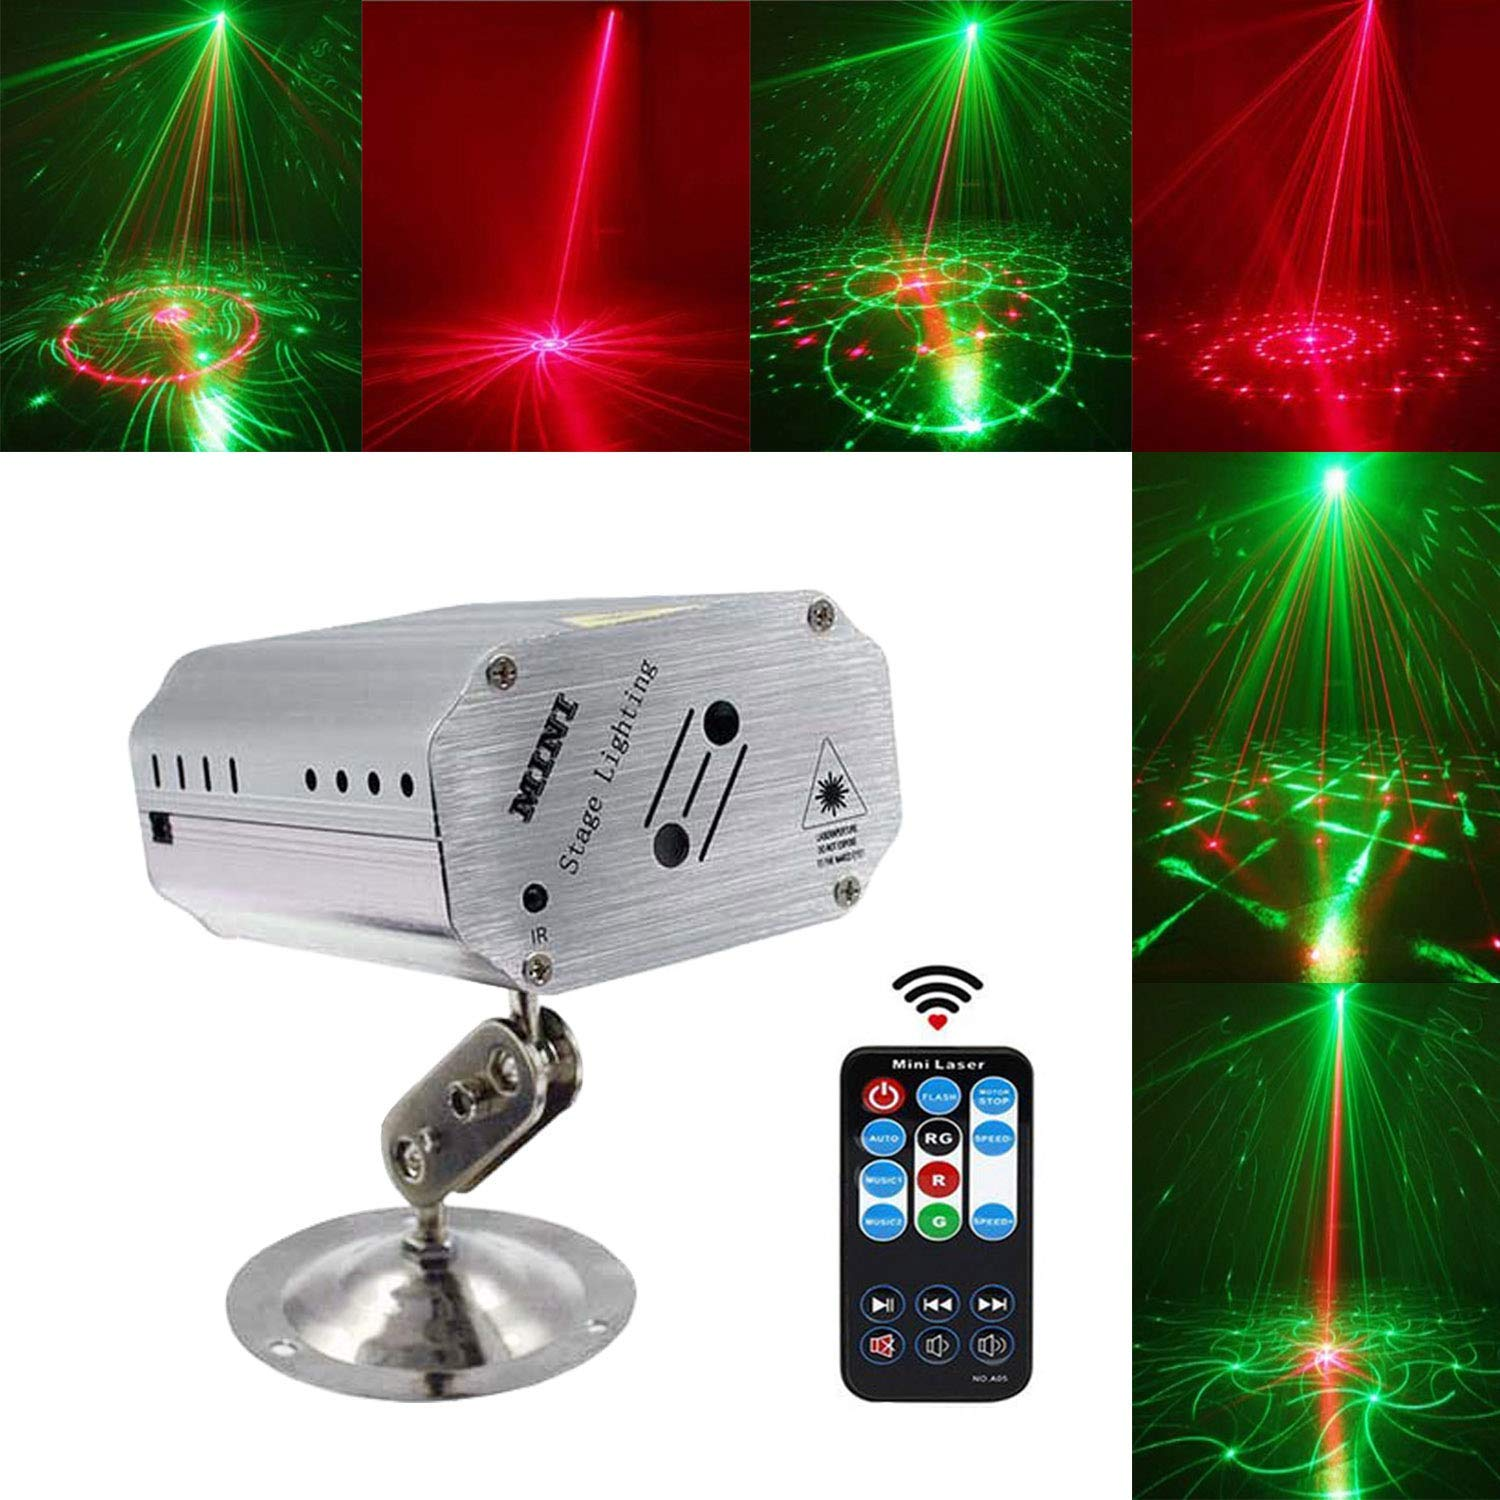 Party Lights, Tatufy DJ Disco Stage Lights,Projector Laser Lights, Karaoke Strobe Perform for Stage Lighting with Remote Control for Dancing Thanksgiving KTV Bar Birthday Outdoor